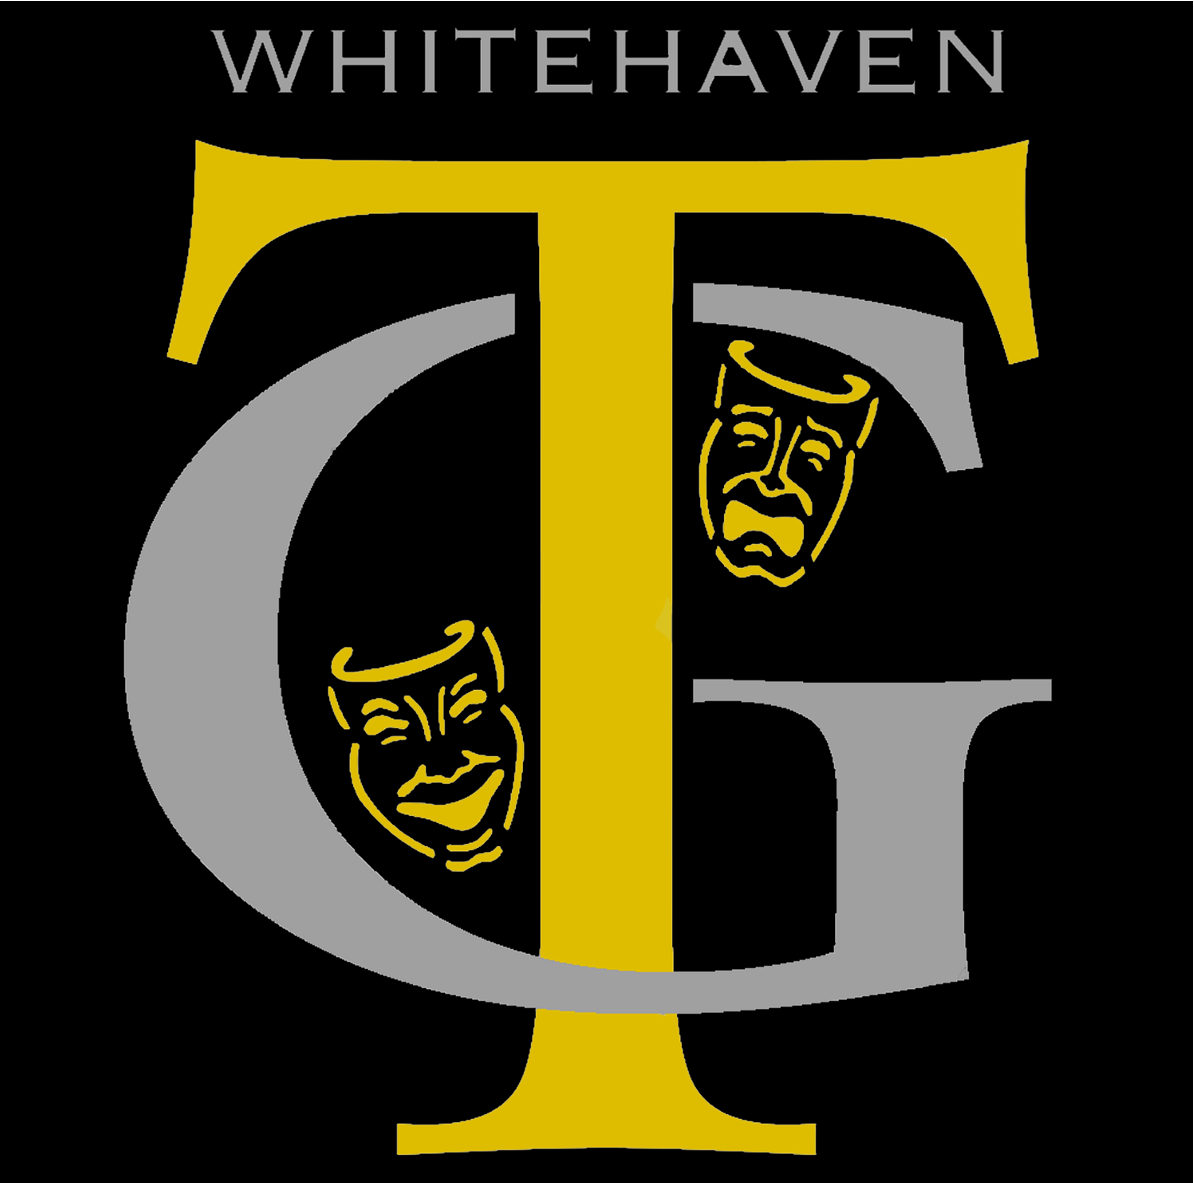 Whitehaven Theatre Group